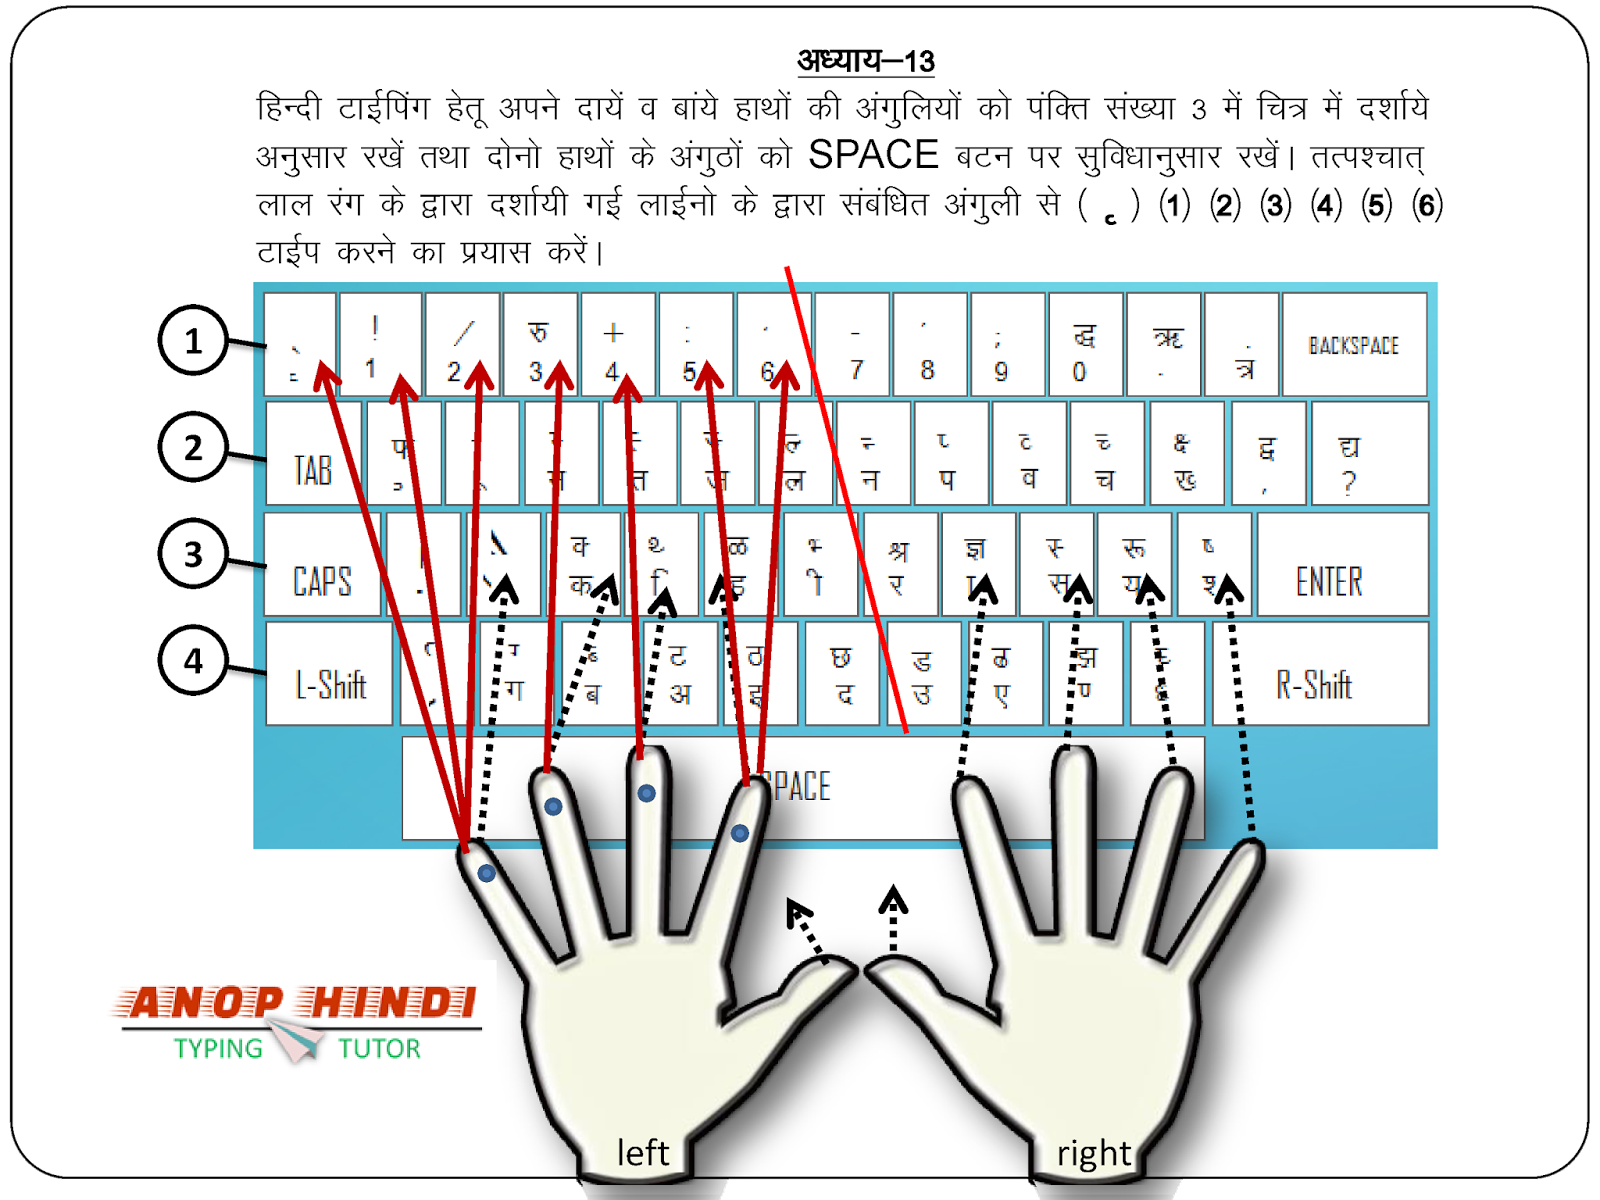 Anop Hindi Typing Tutor - Lesson 13